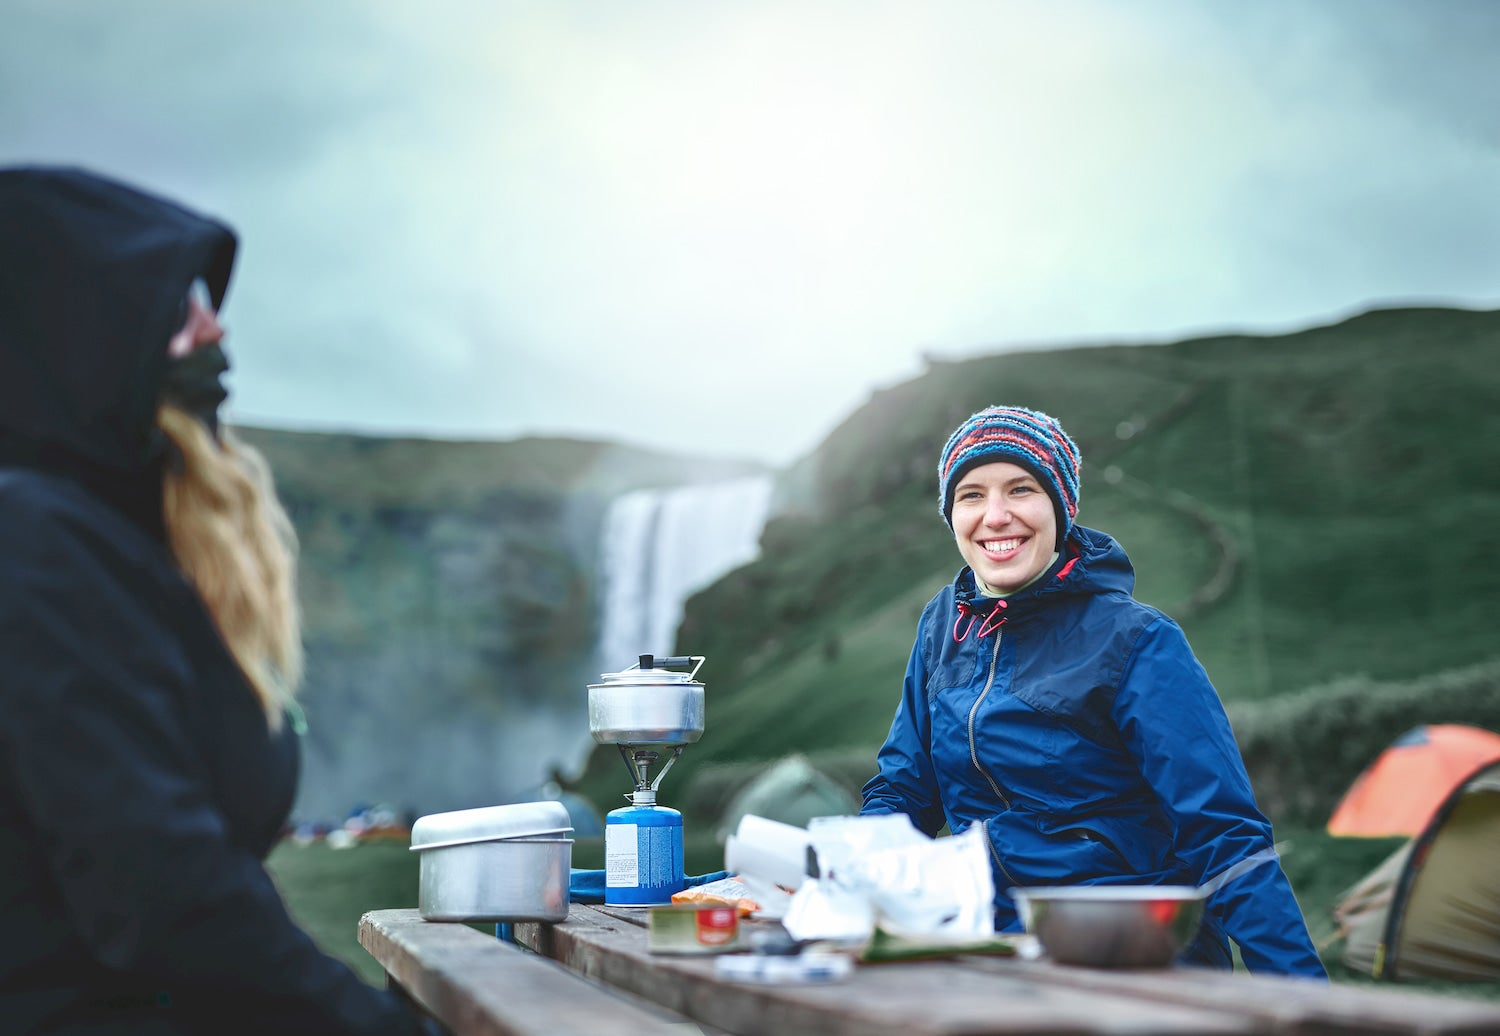 backpacking cooking at picnic table